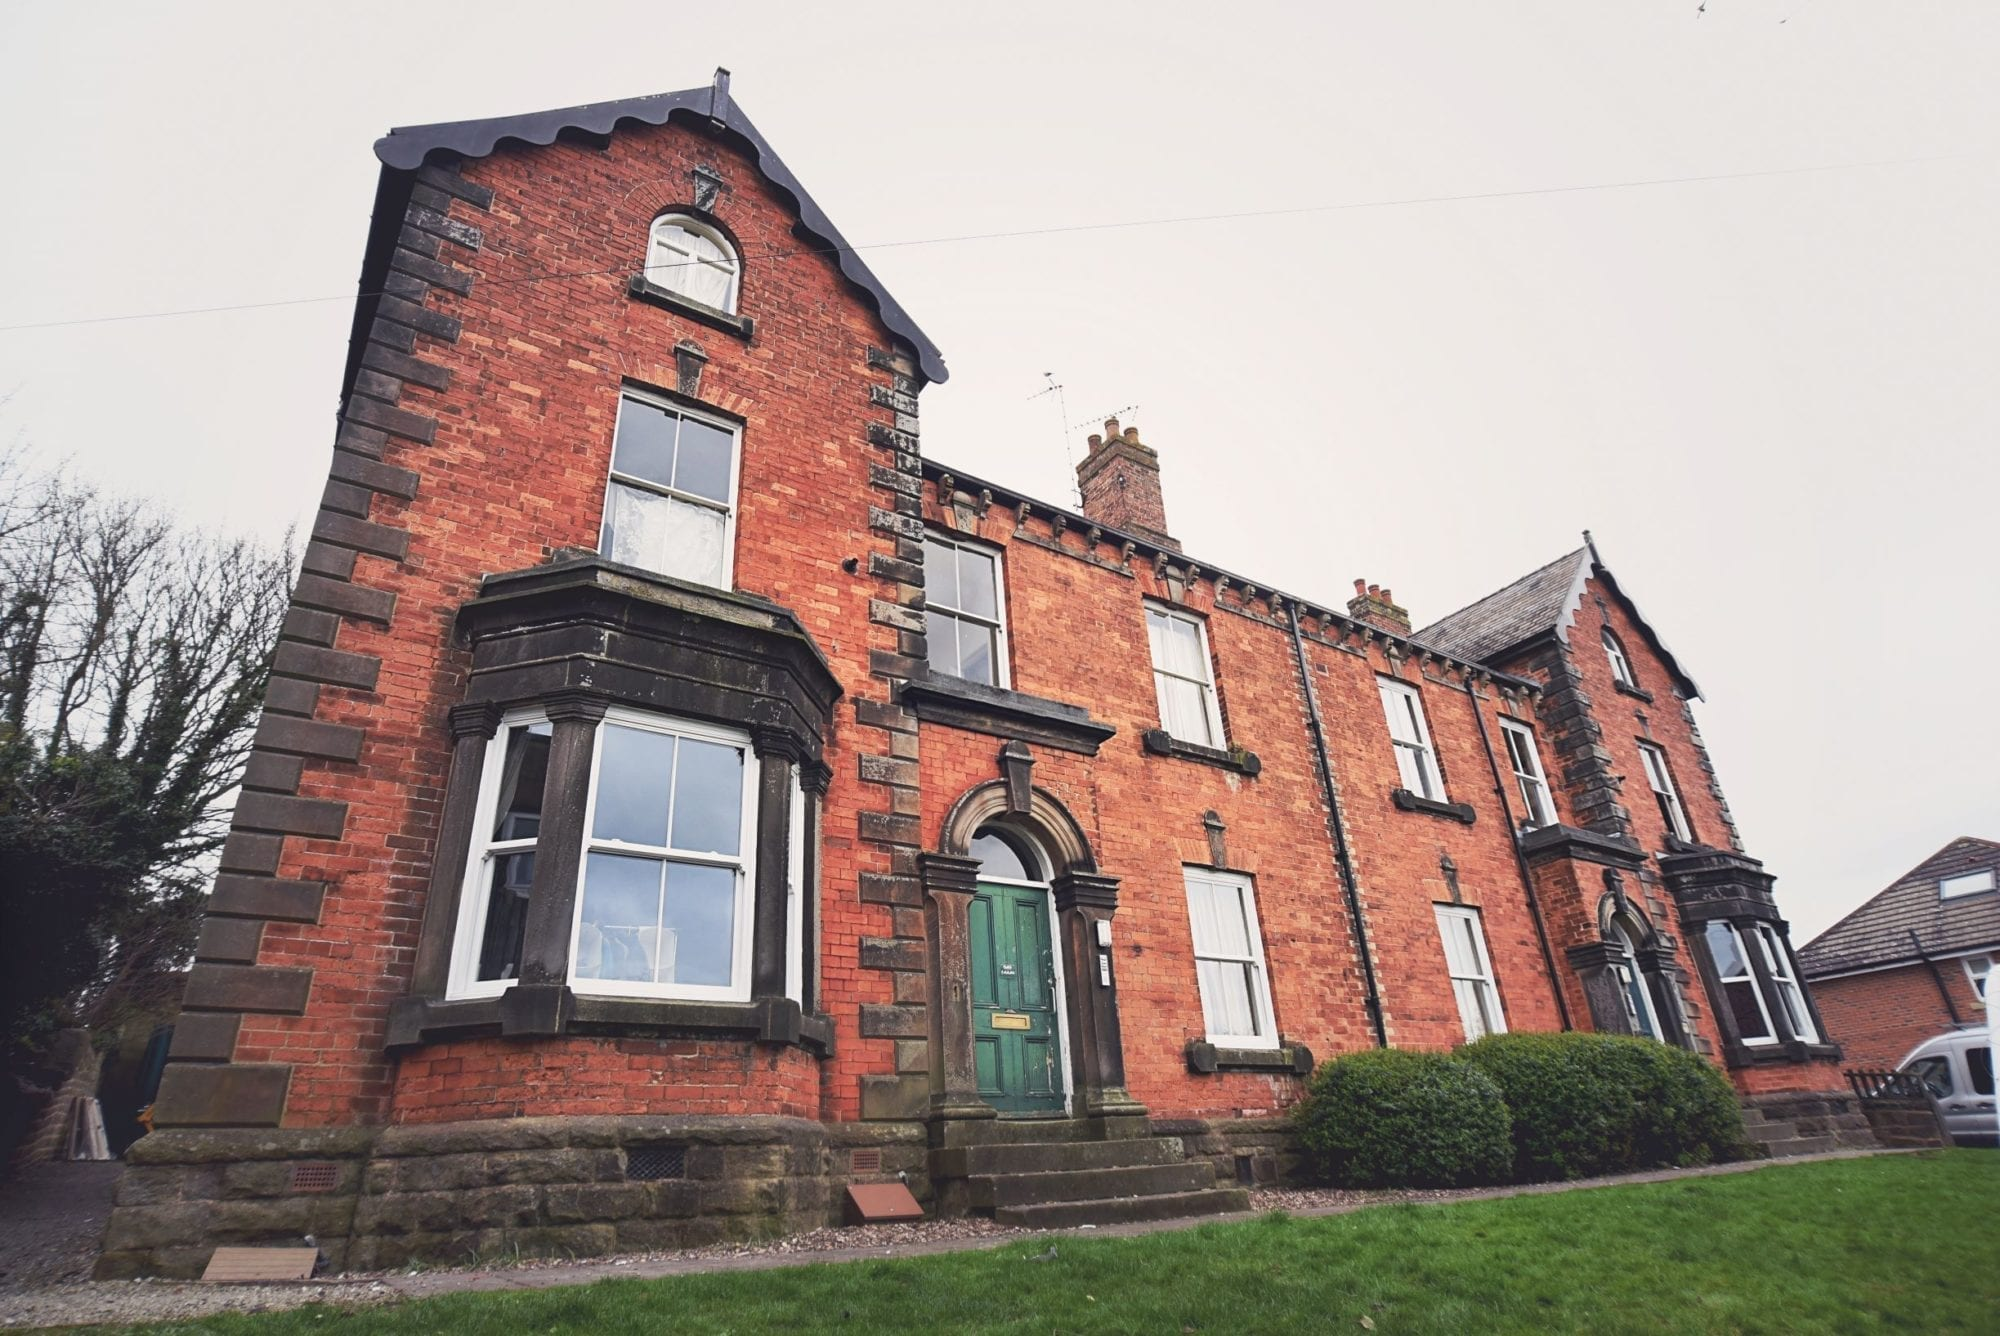 Large house with Victorian Windows